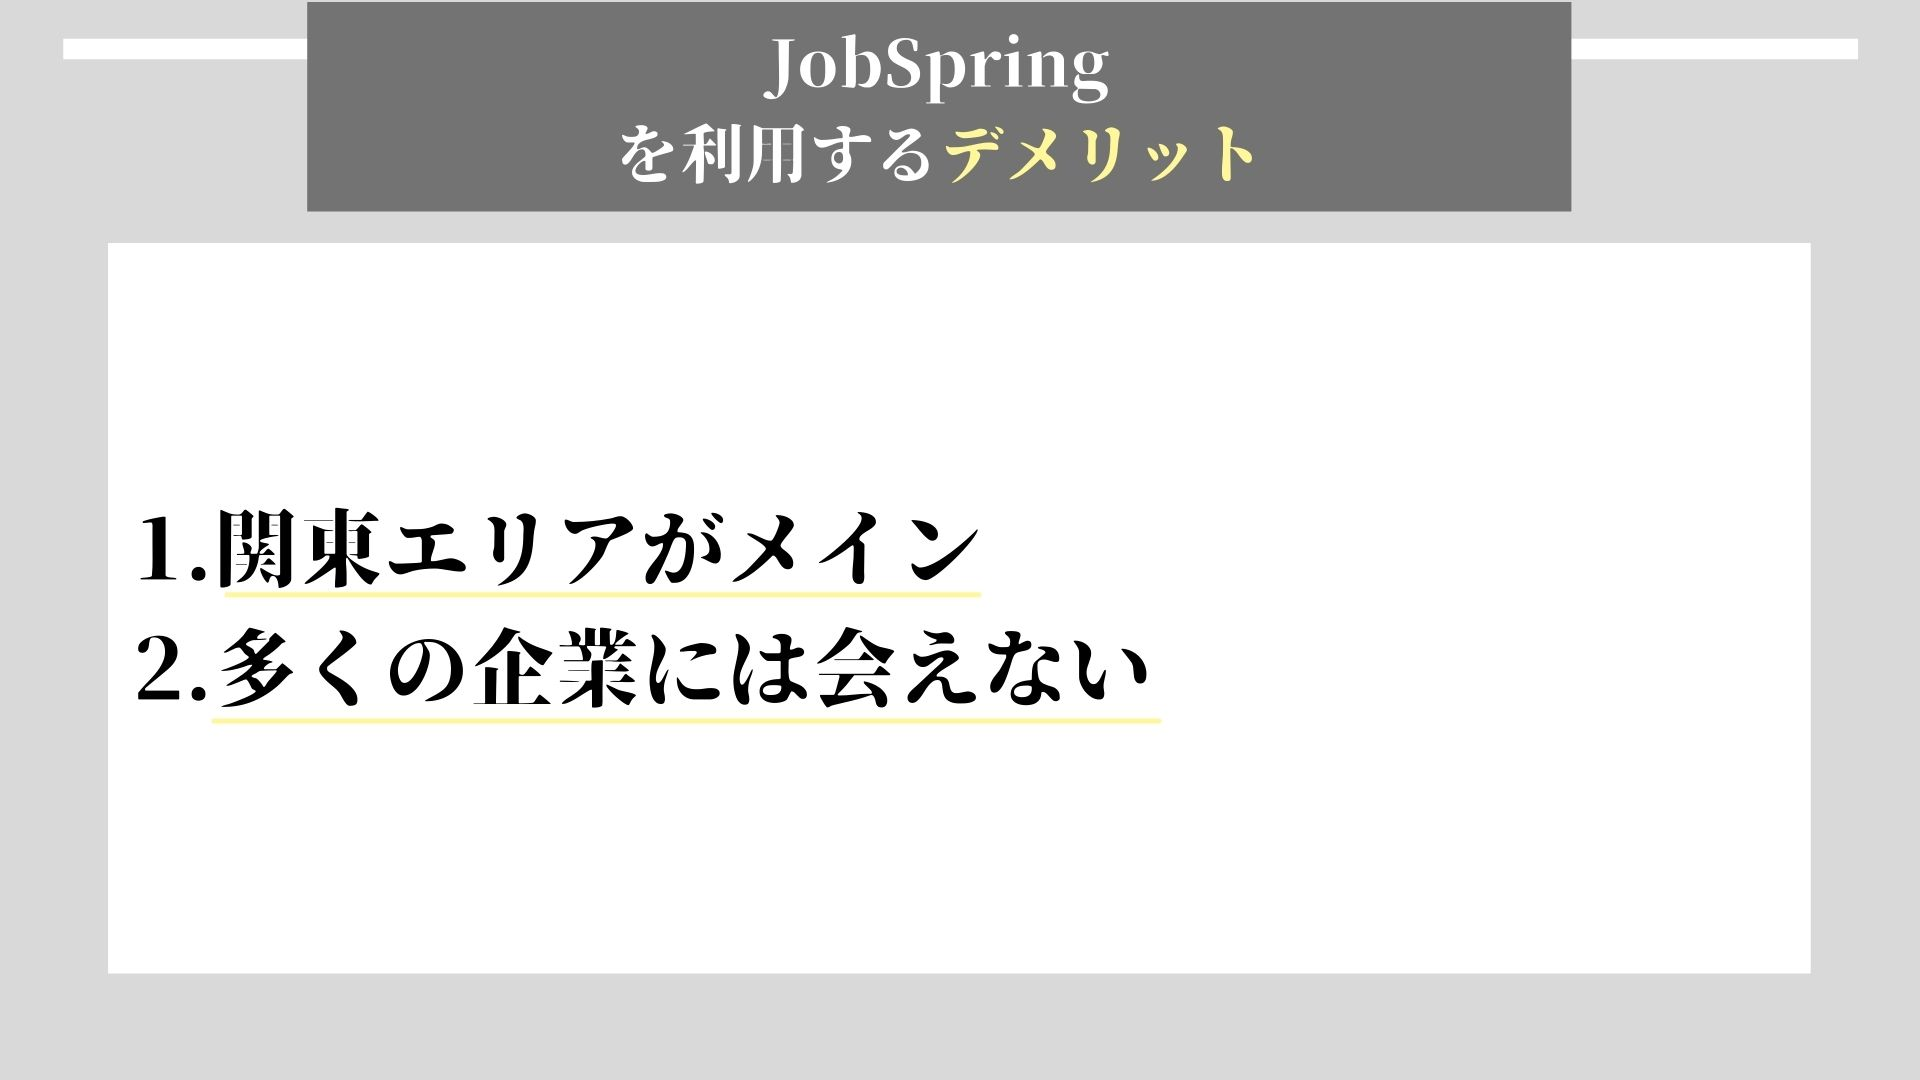 JobSpring デメリット